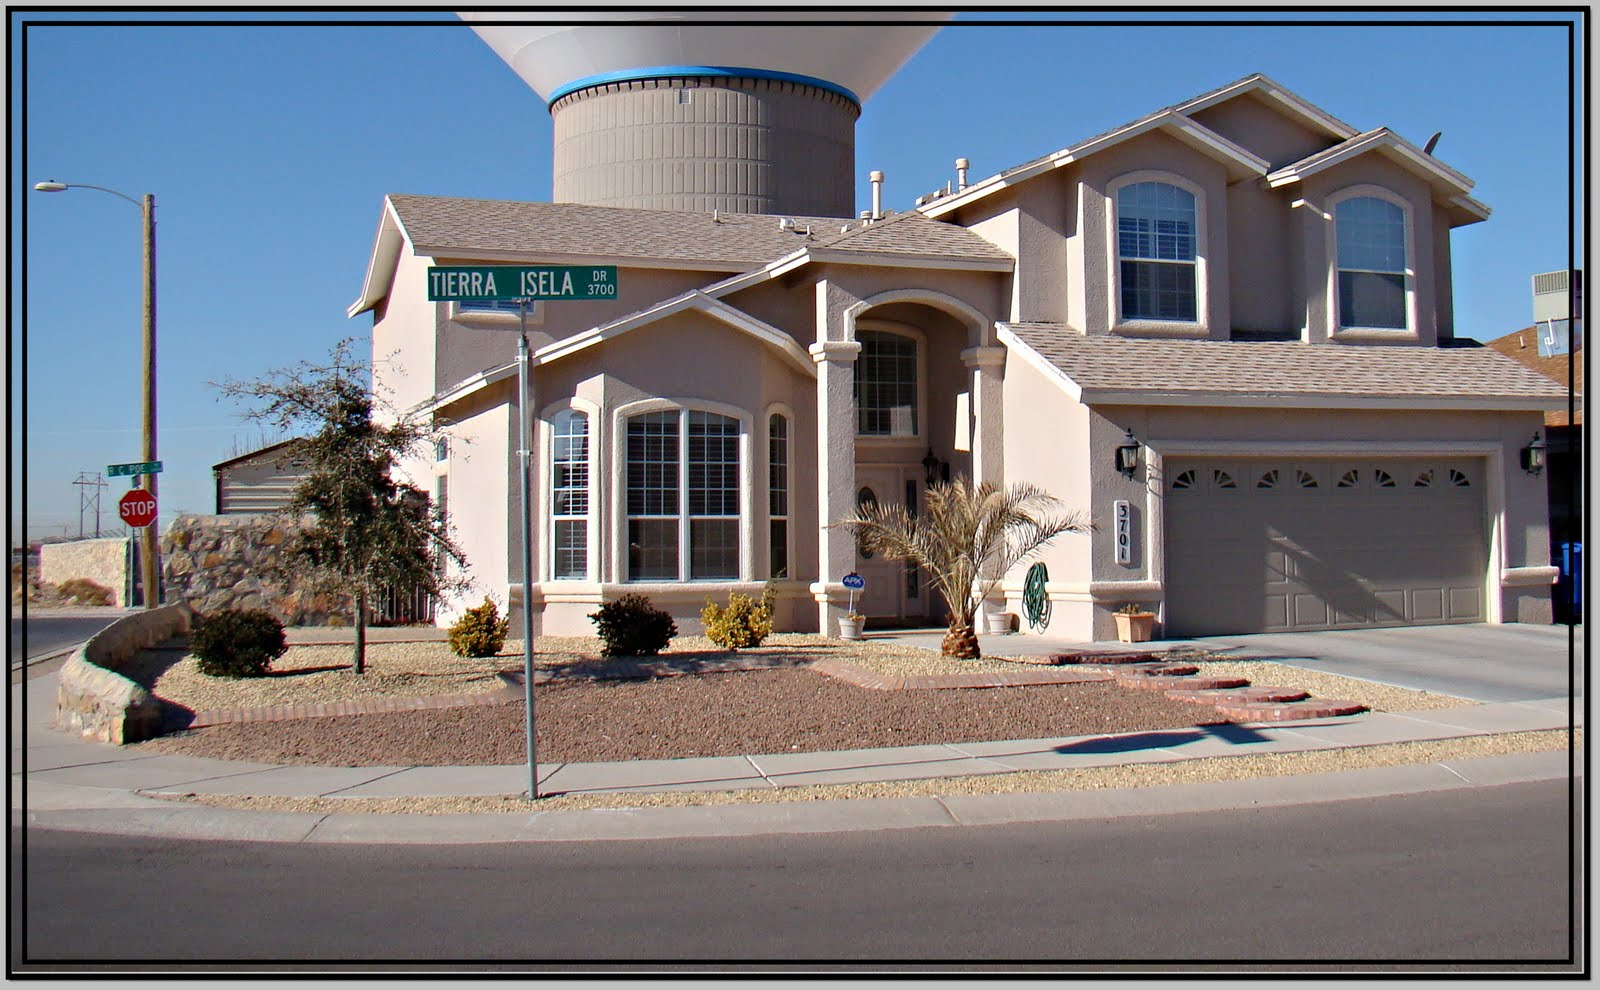 El paso homes 3701 tierra isela el paso tx 79938 eastside for Homes in el paso tx